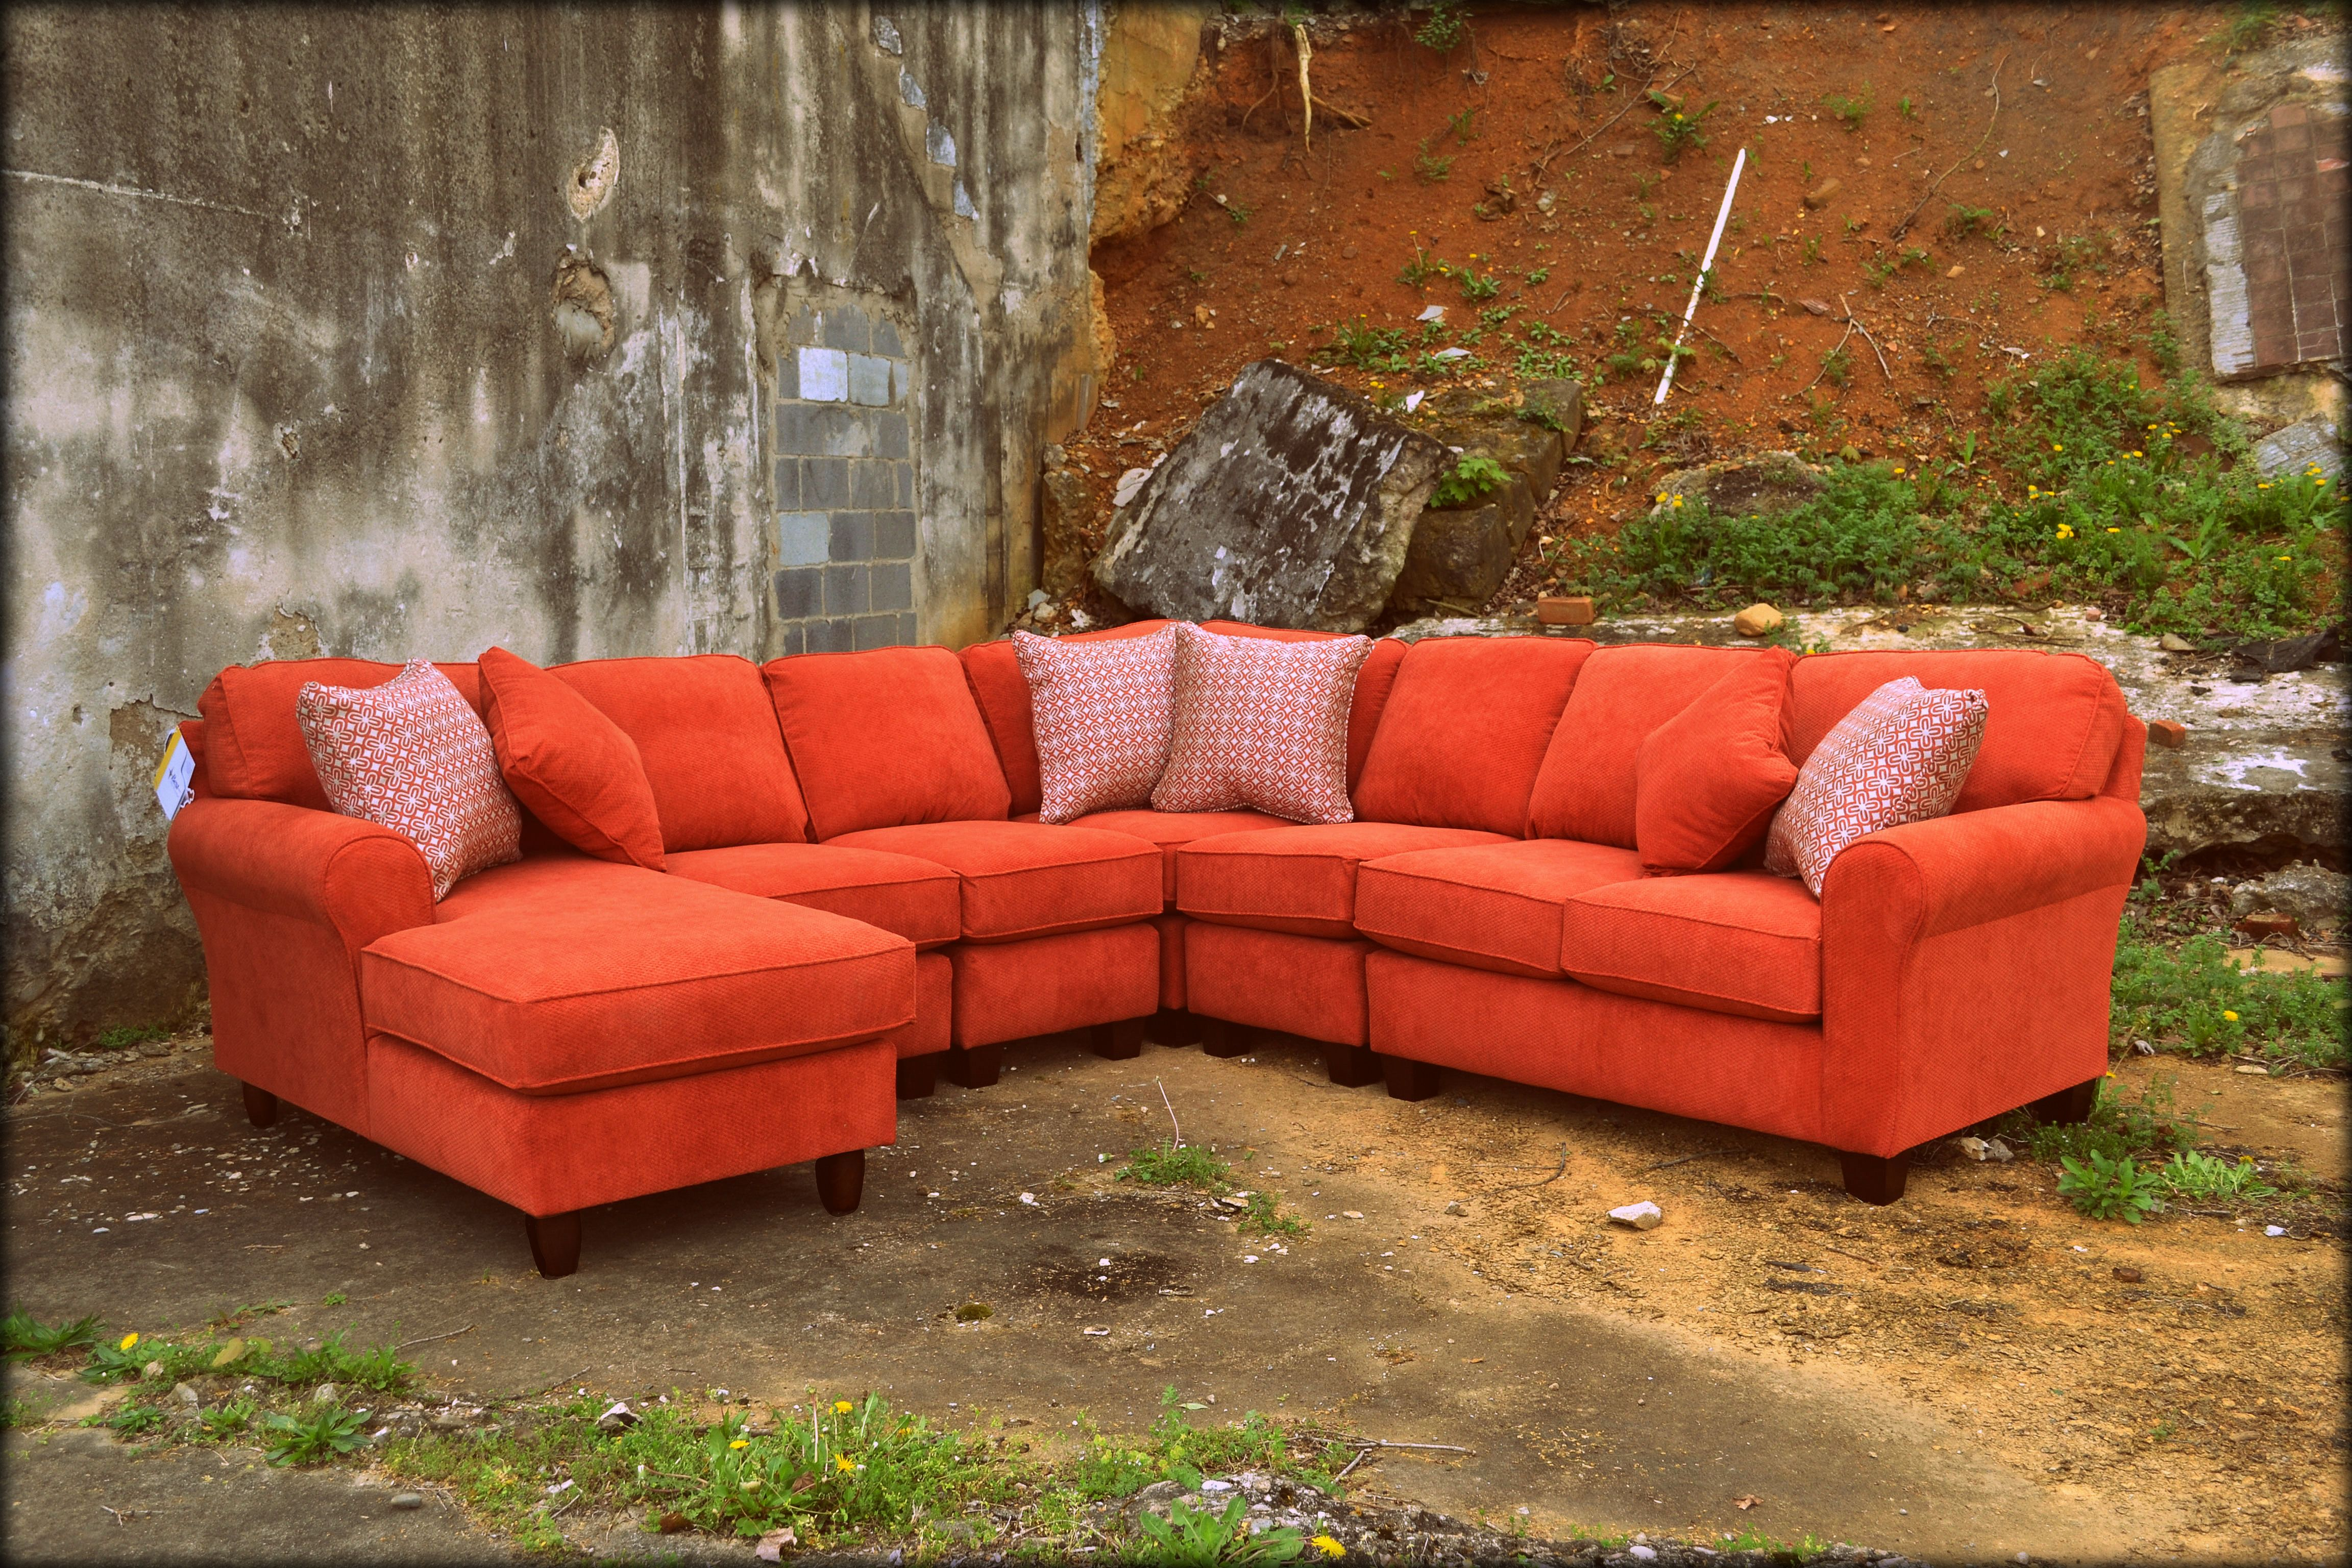 Ordinaire Best Chair Co. Sectional @ Ritchieu0027s Furniture U0026 Appliance In Downtown  Elizabethton Tennessee.